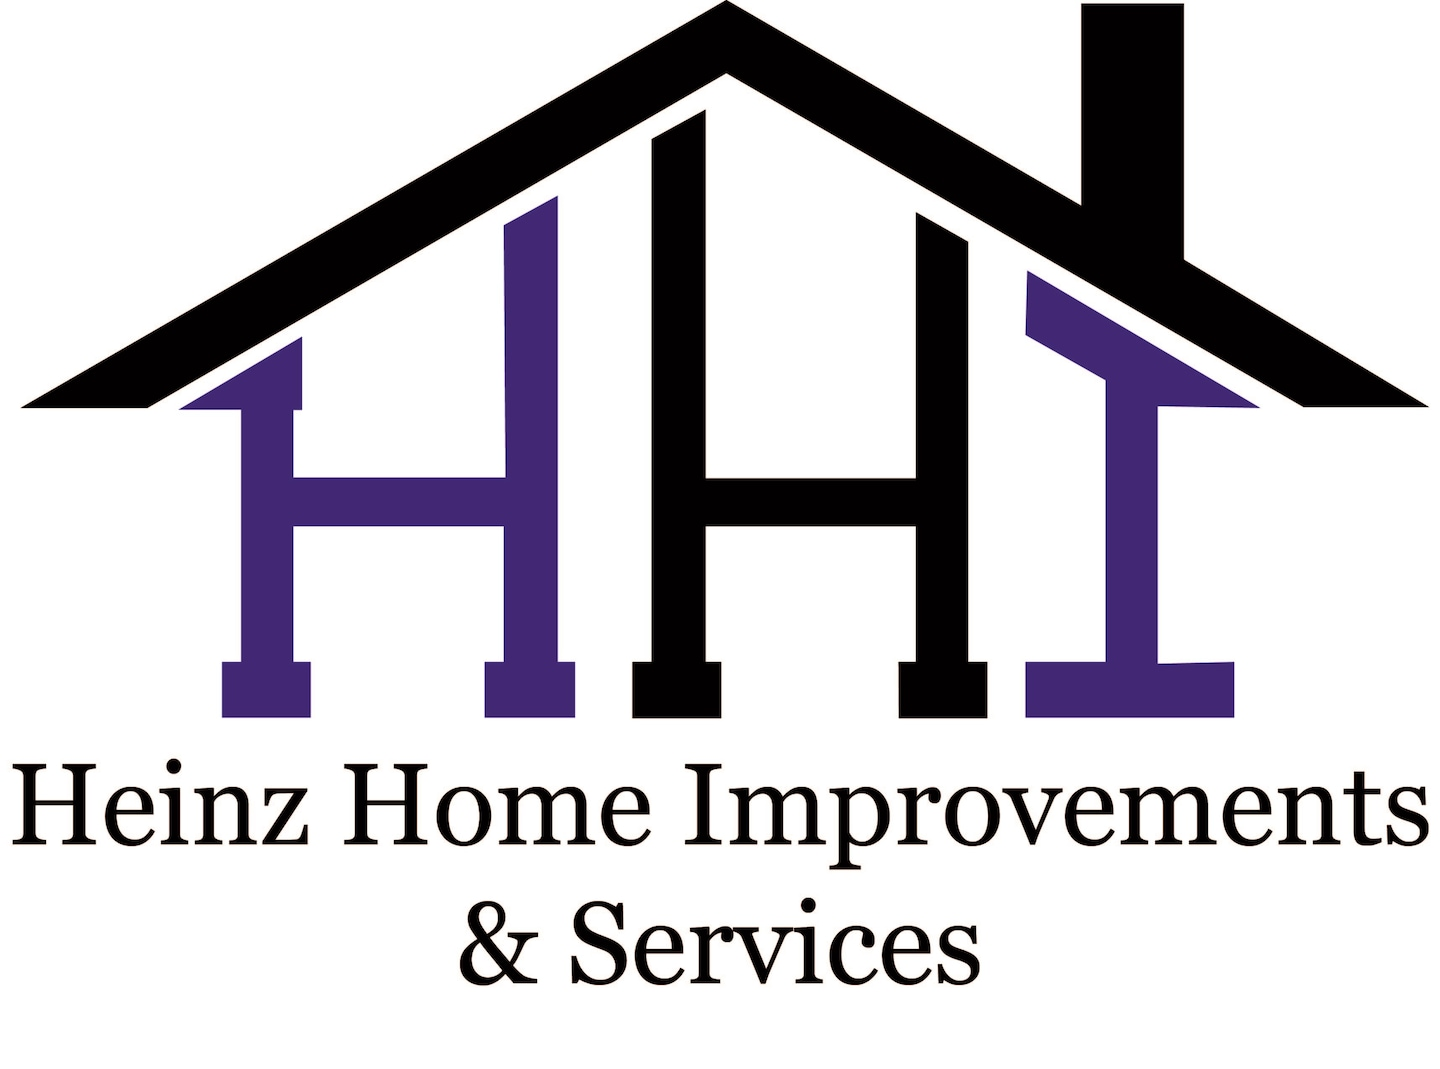 Heinz Home Improvements and Services, Inc.